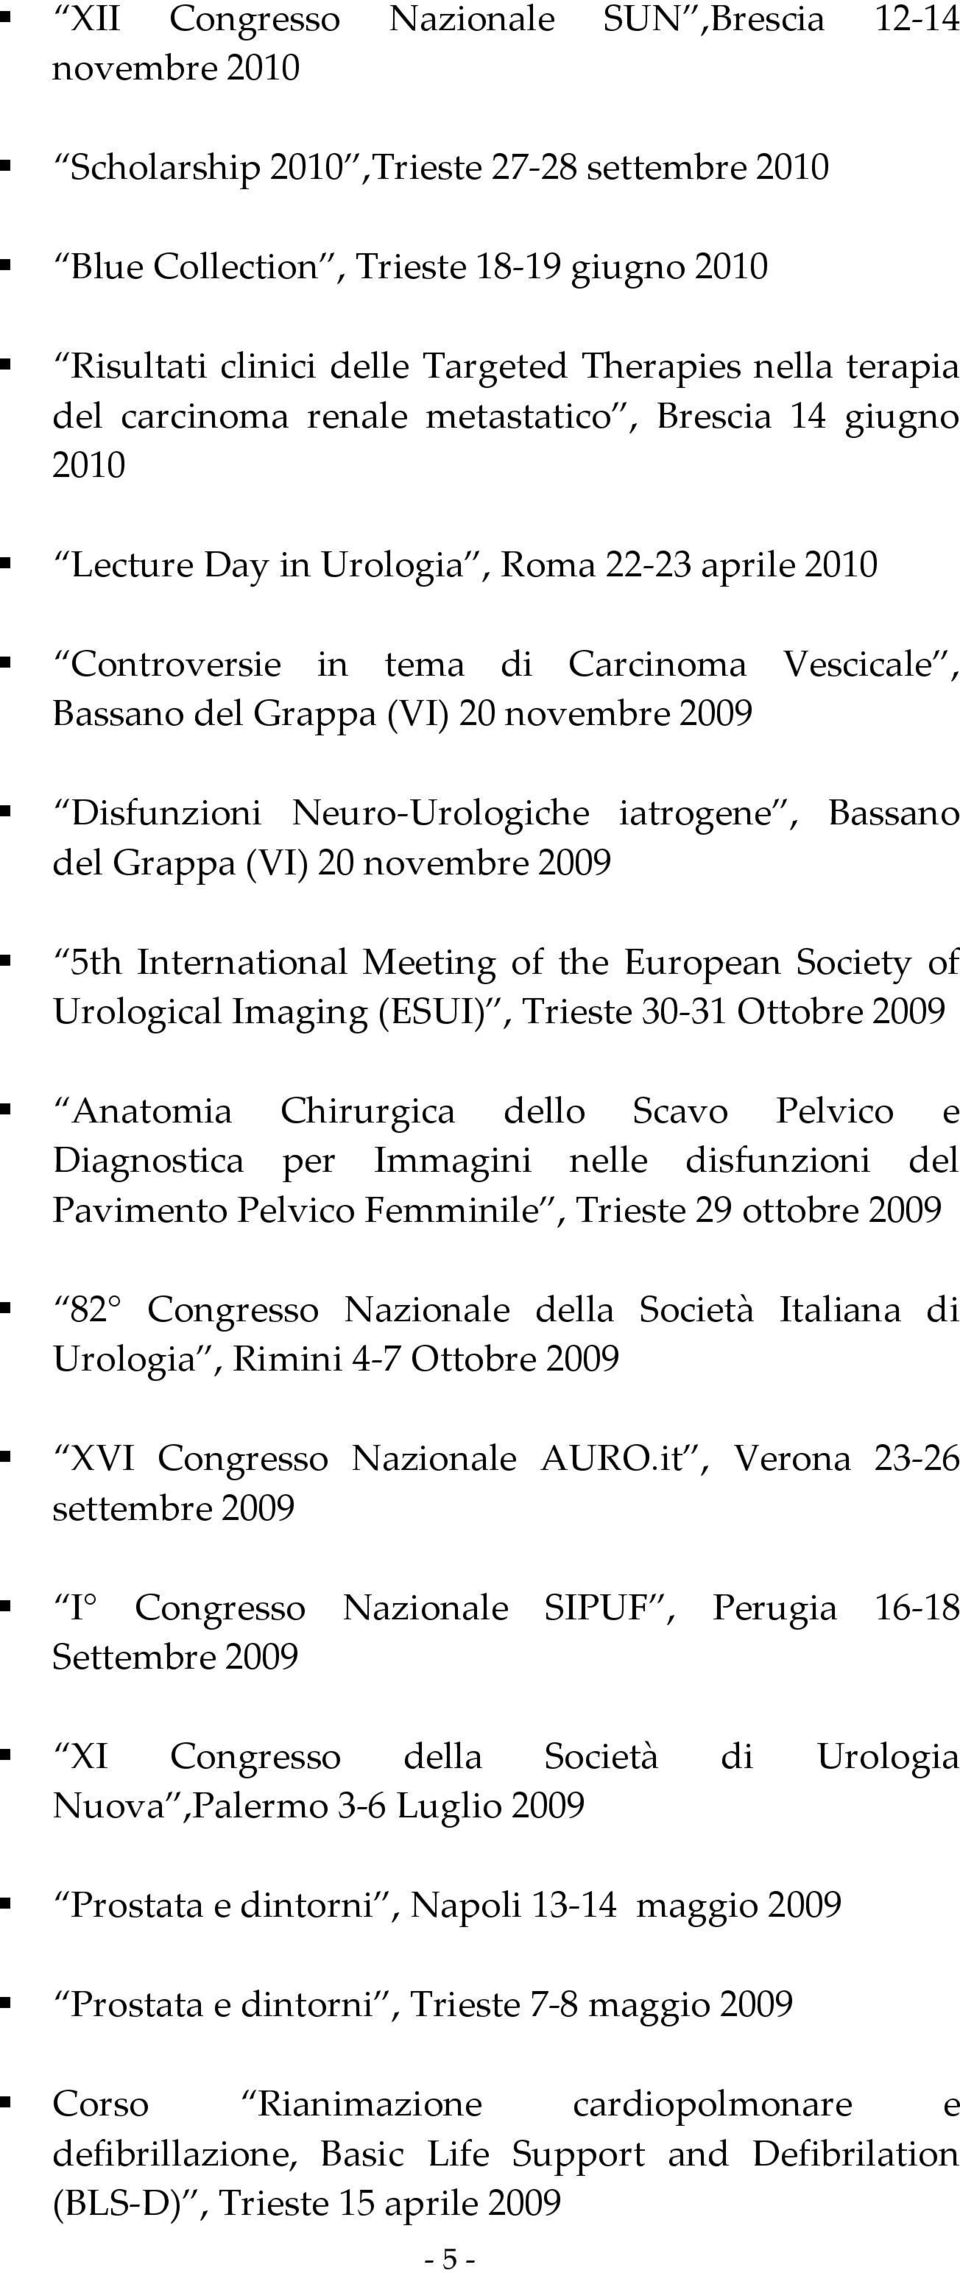 Disfunzioni Neuro-Urologiche iatrogene, Bassano del Grappa (VI) 20 novembre 2009 5th International Meeting of the European Society of Urological Imaging (ESUI), Trieste 30-31 Ottobre 2009 Anatomia